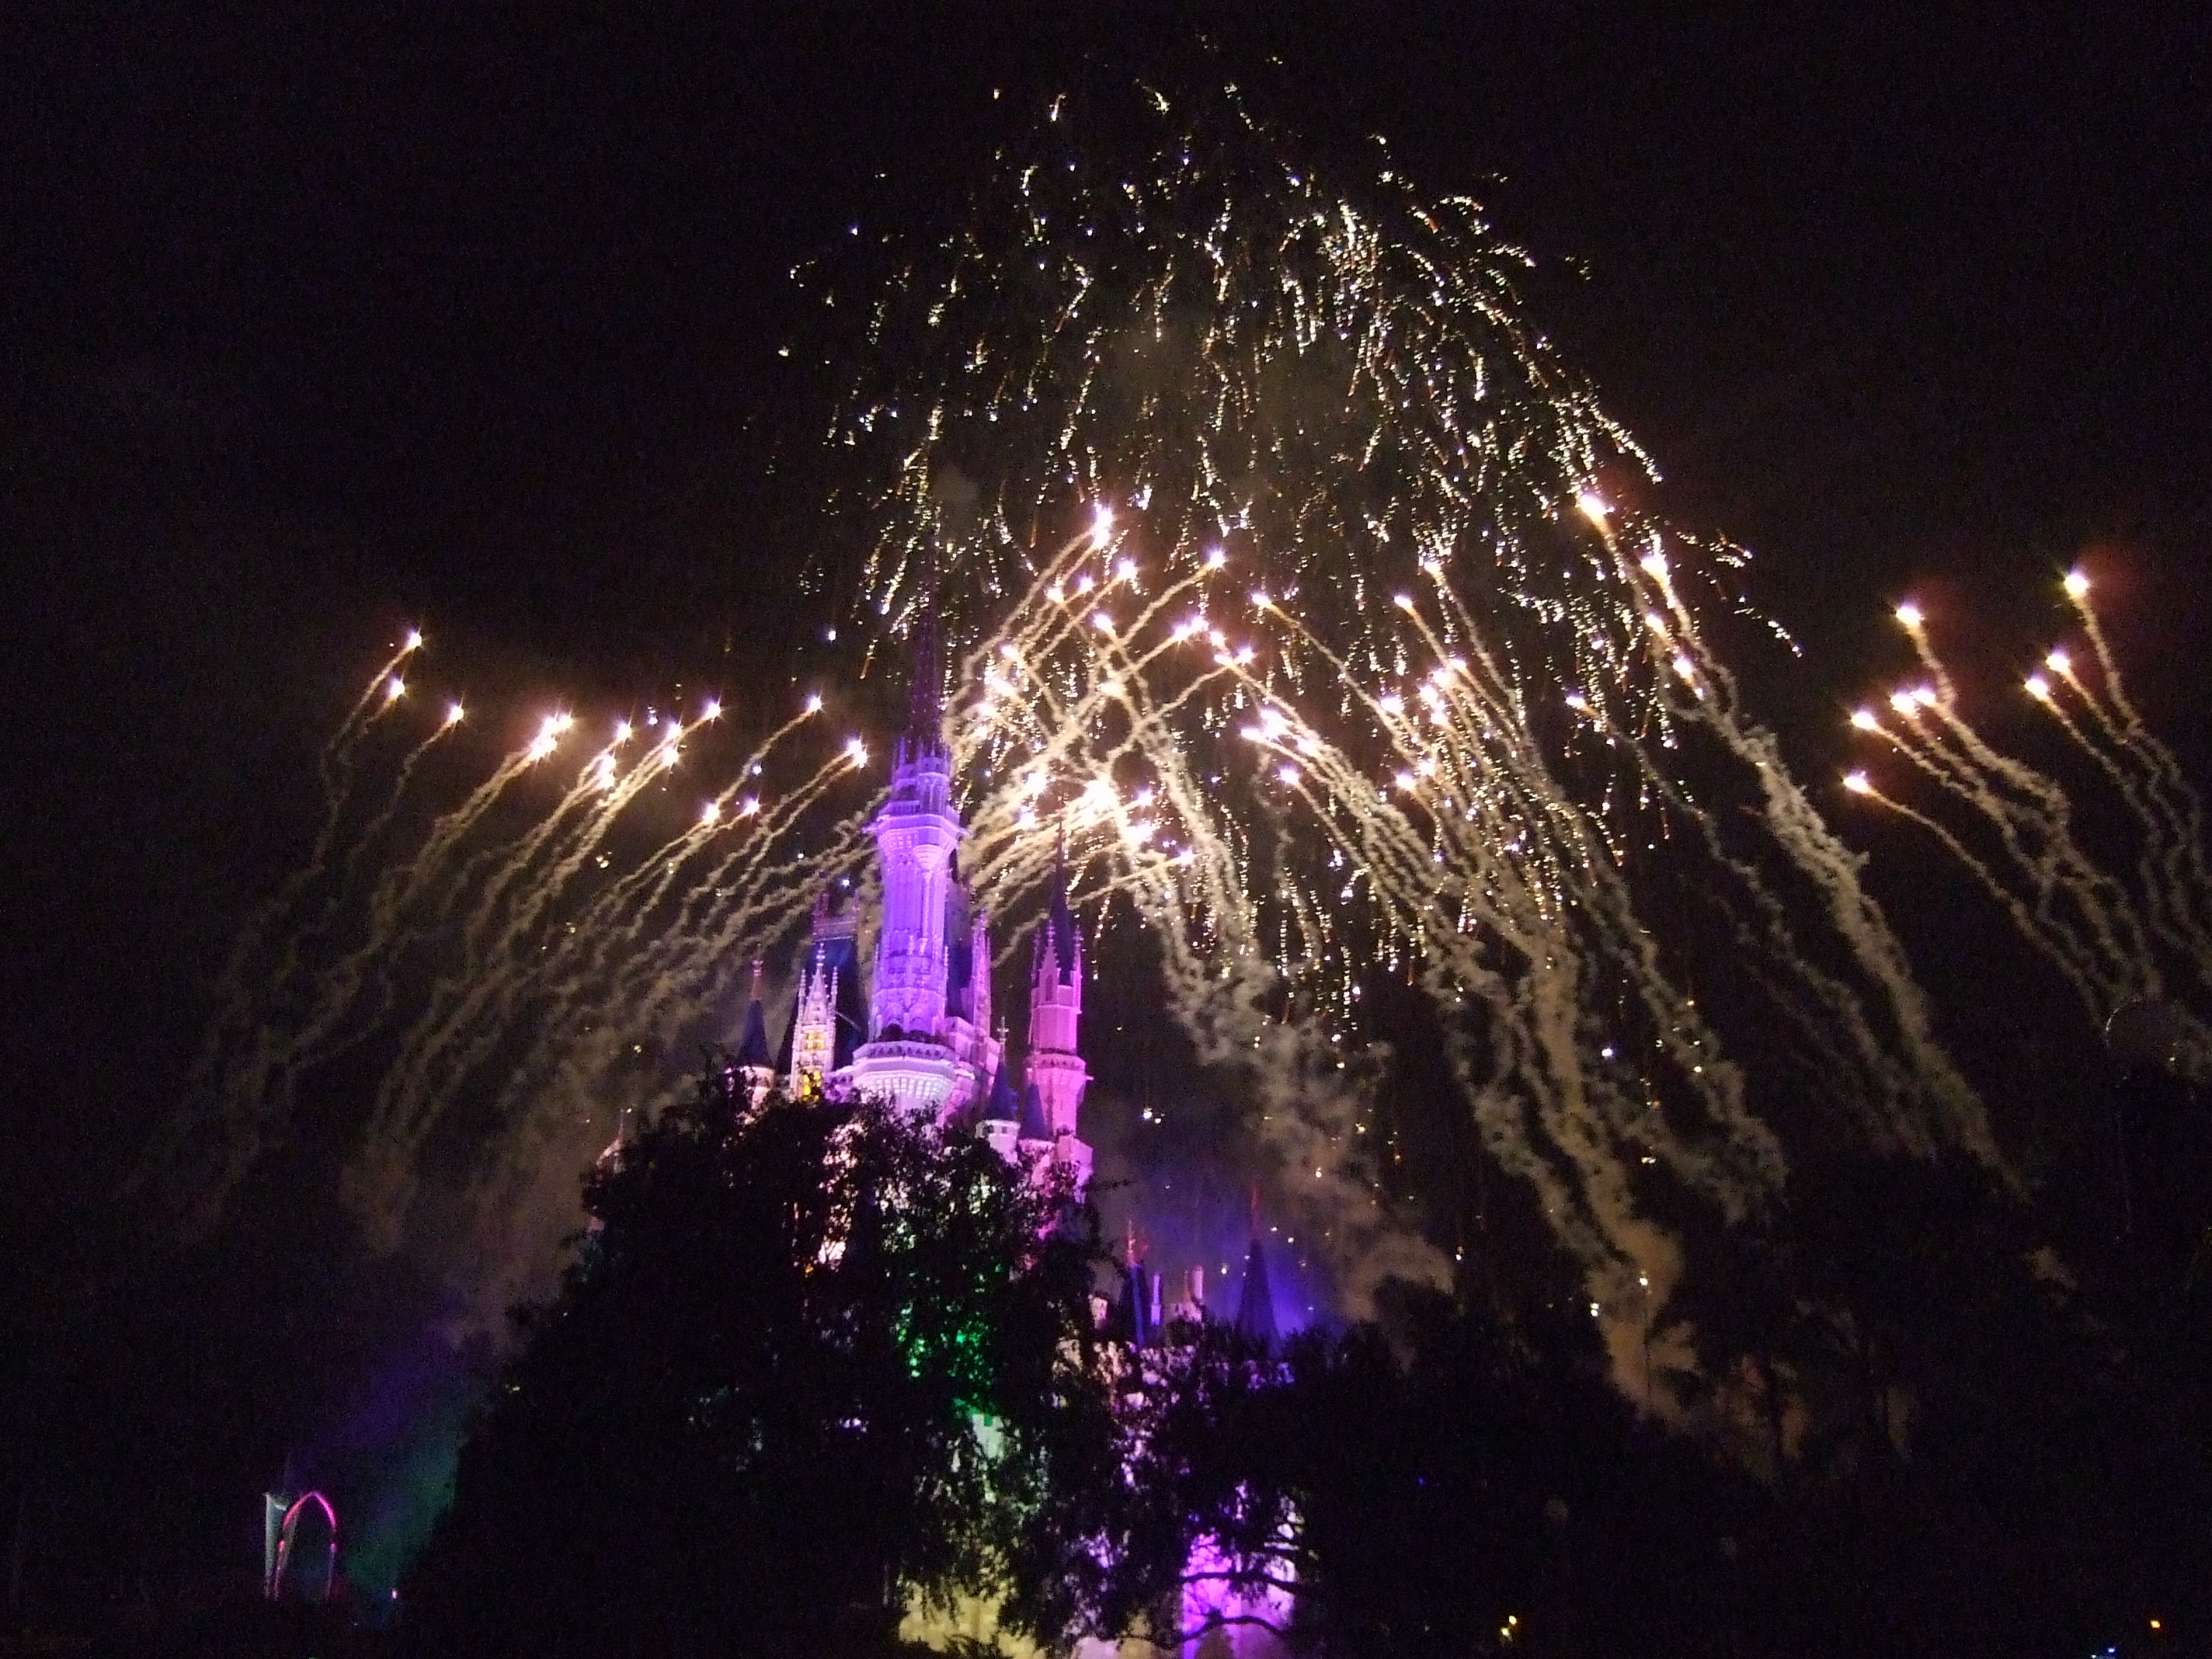 Disney Vacation Planning: The Magic of Wishes Fireworks